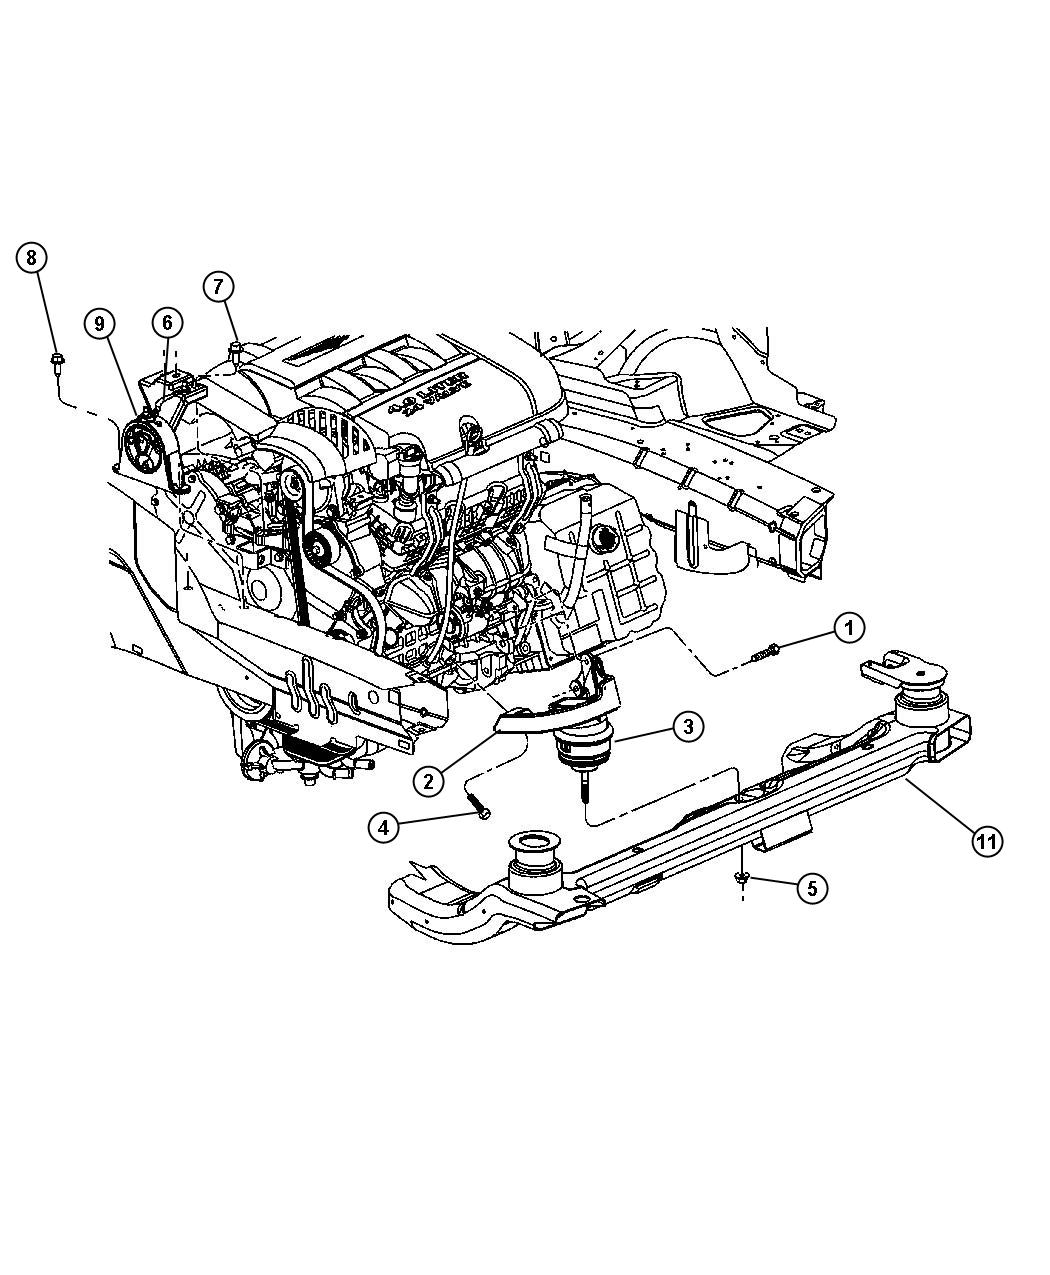 diagram  2004 chrysler pacifica engine diagram full version hd quality engine diagram